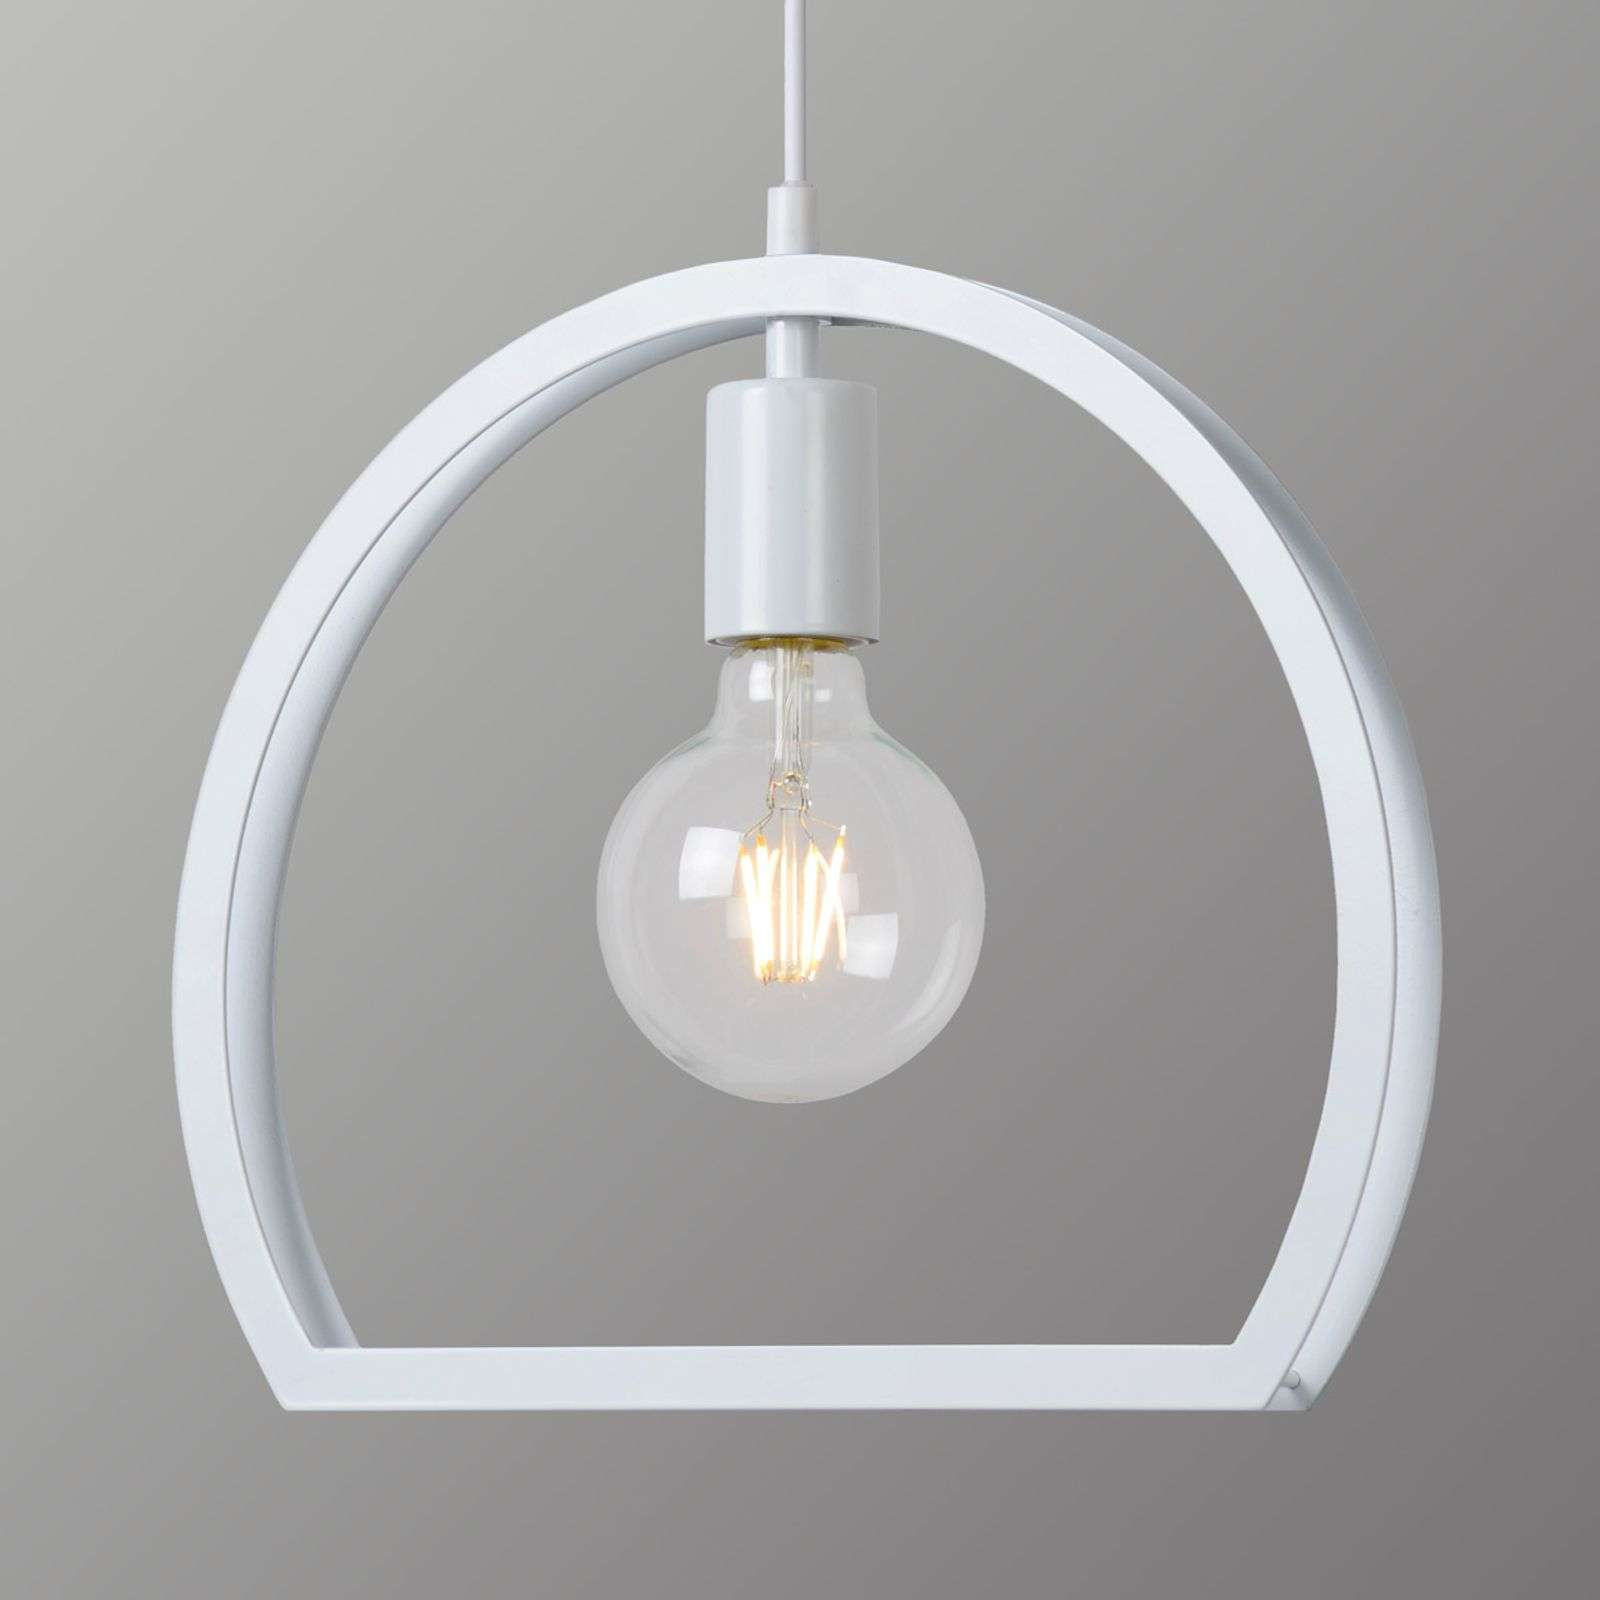 Suspension blanche moderne Contour